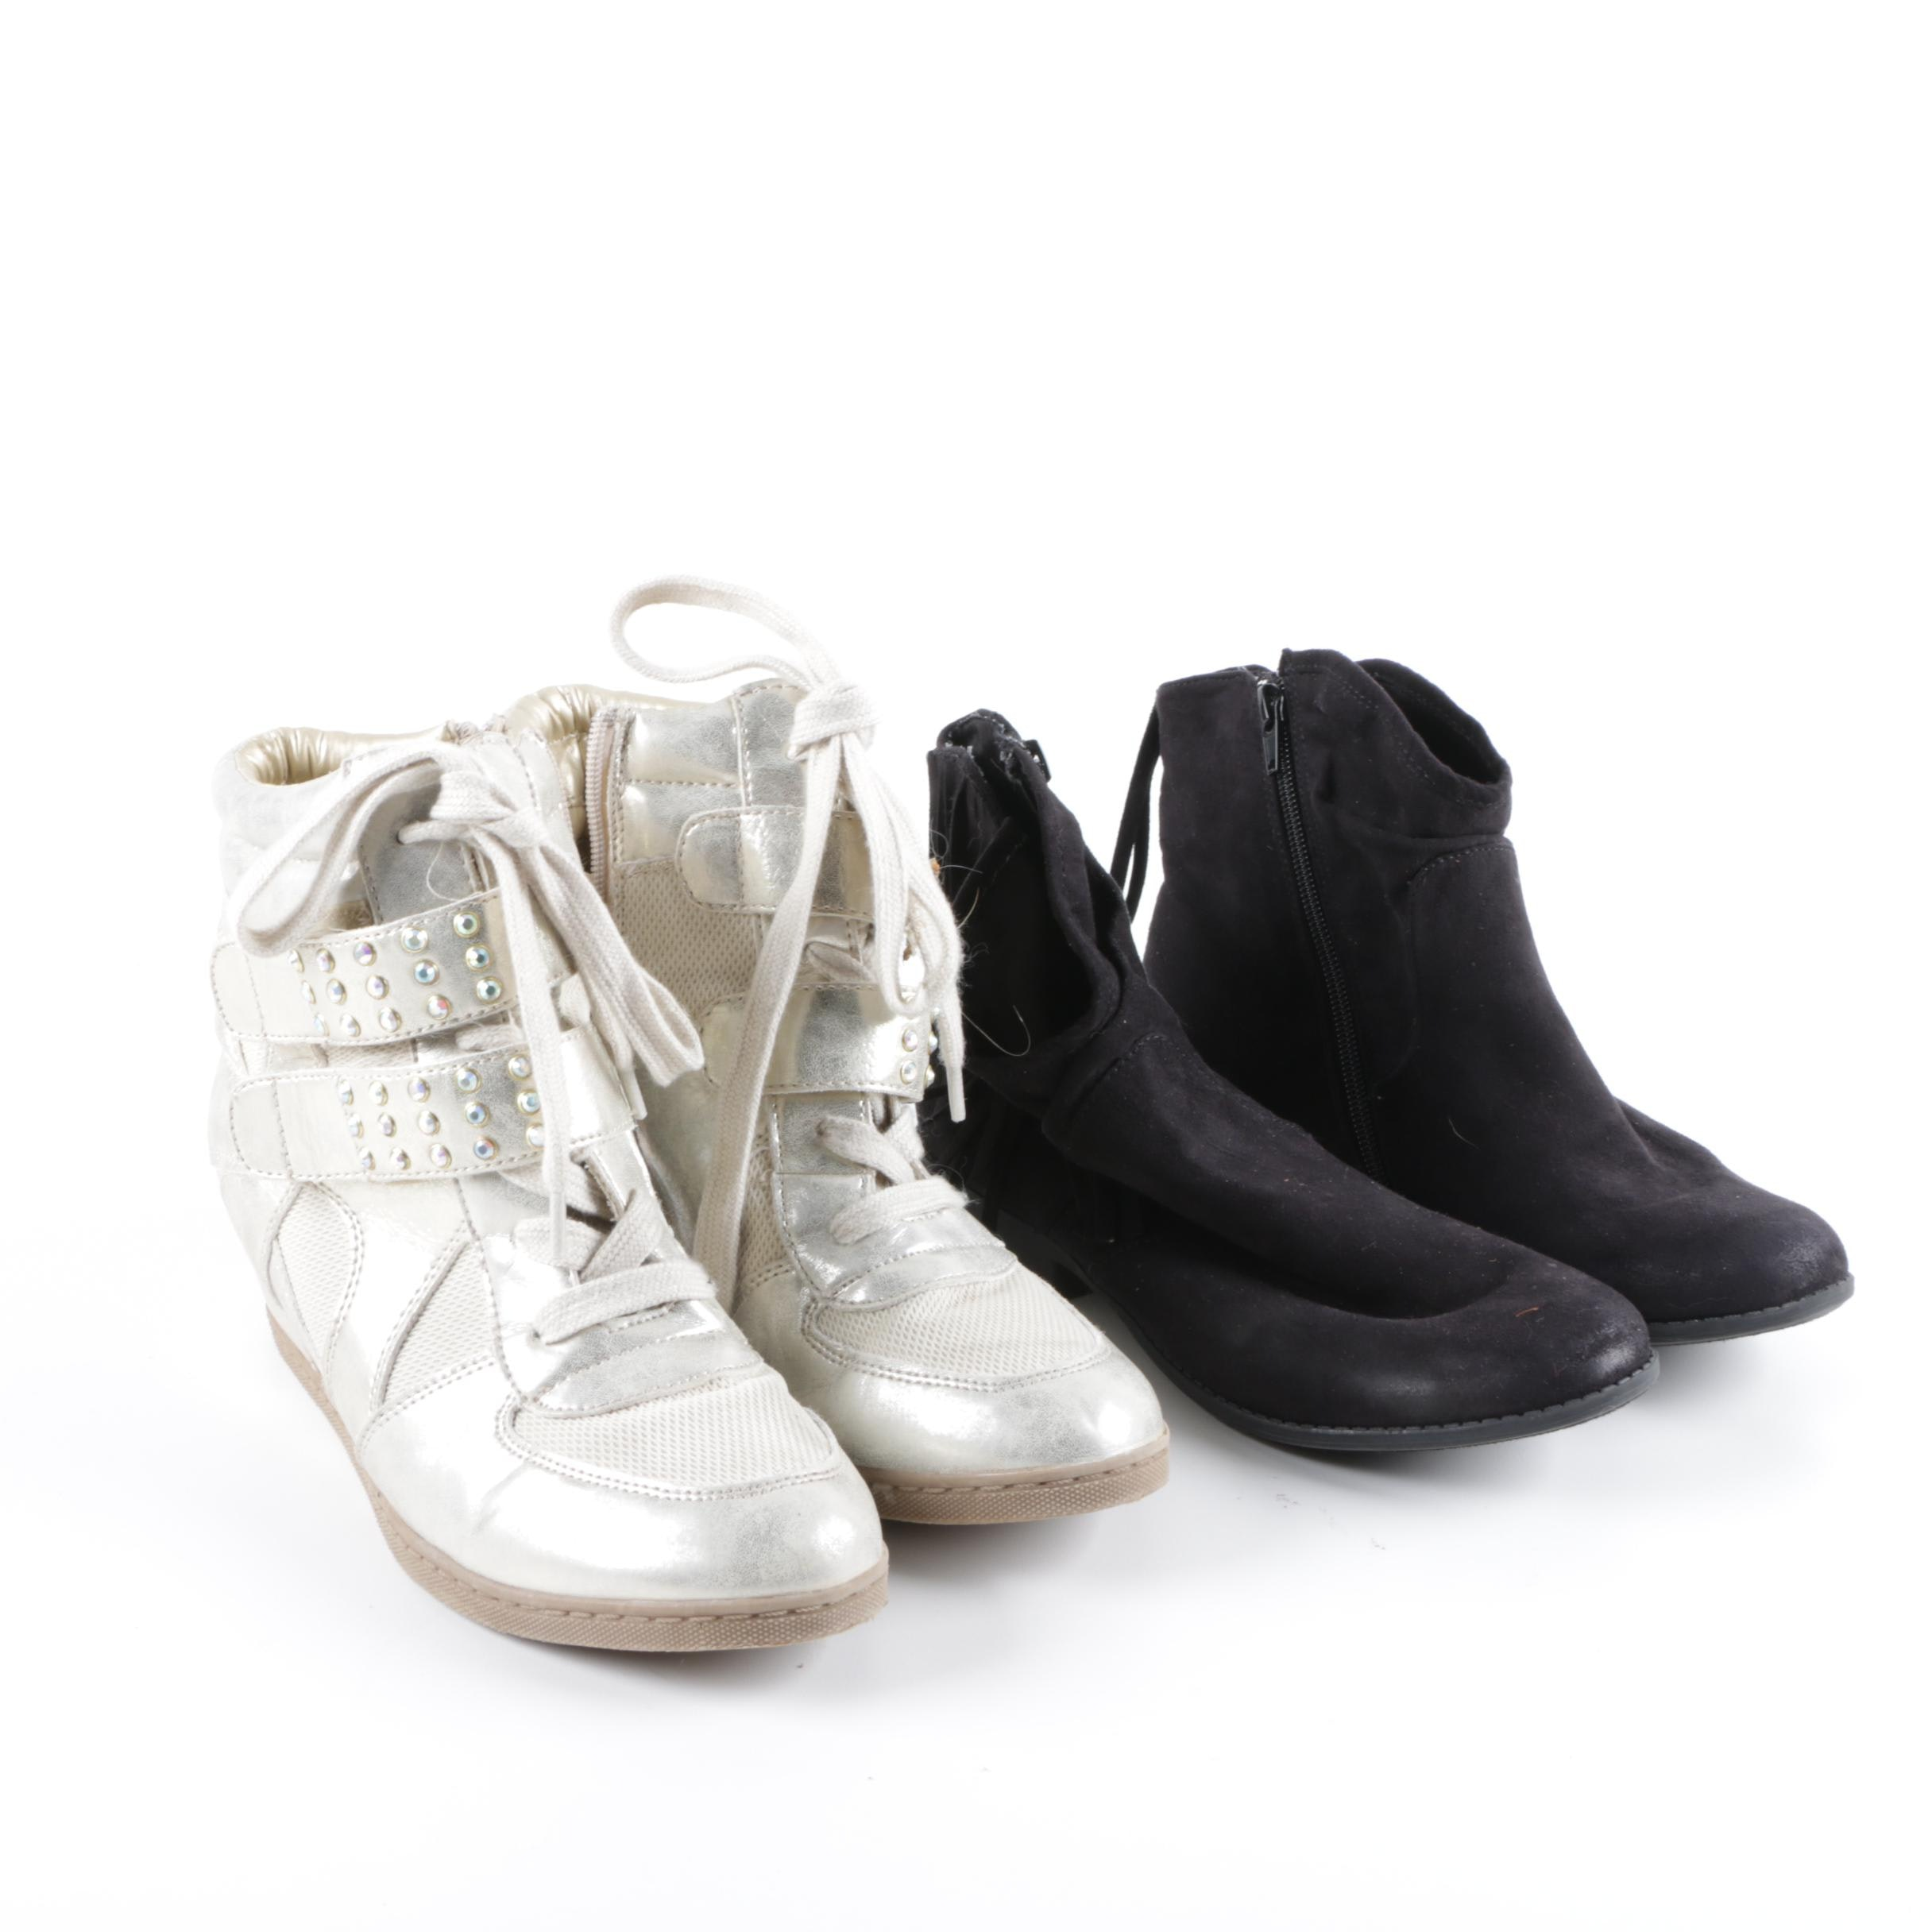 Women's Nine West Ankle Booties and Steve Madden Sneakers